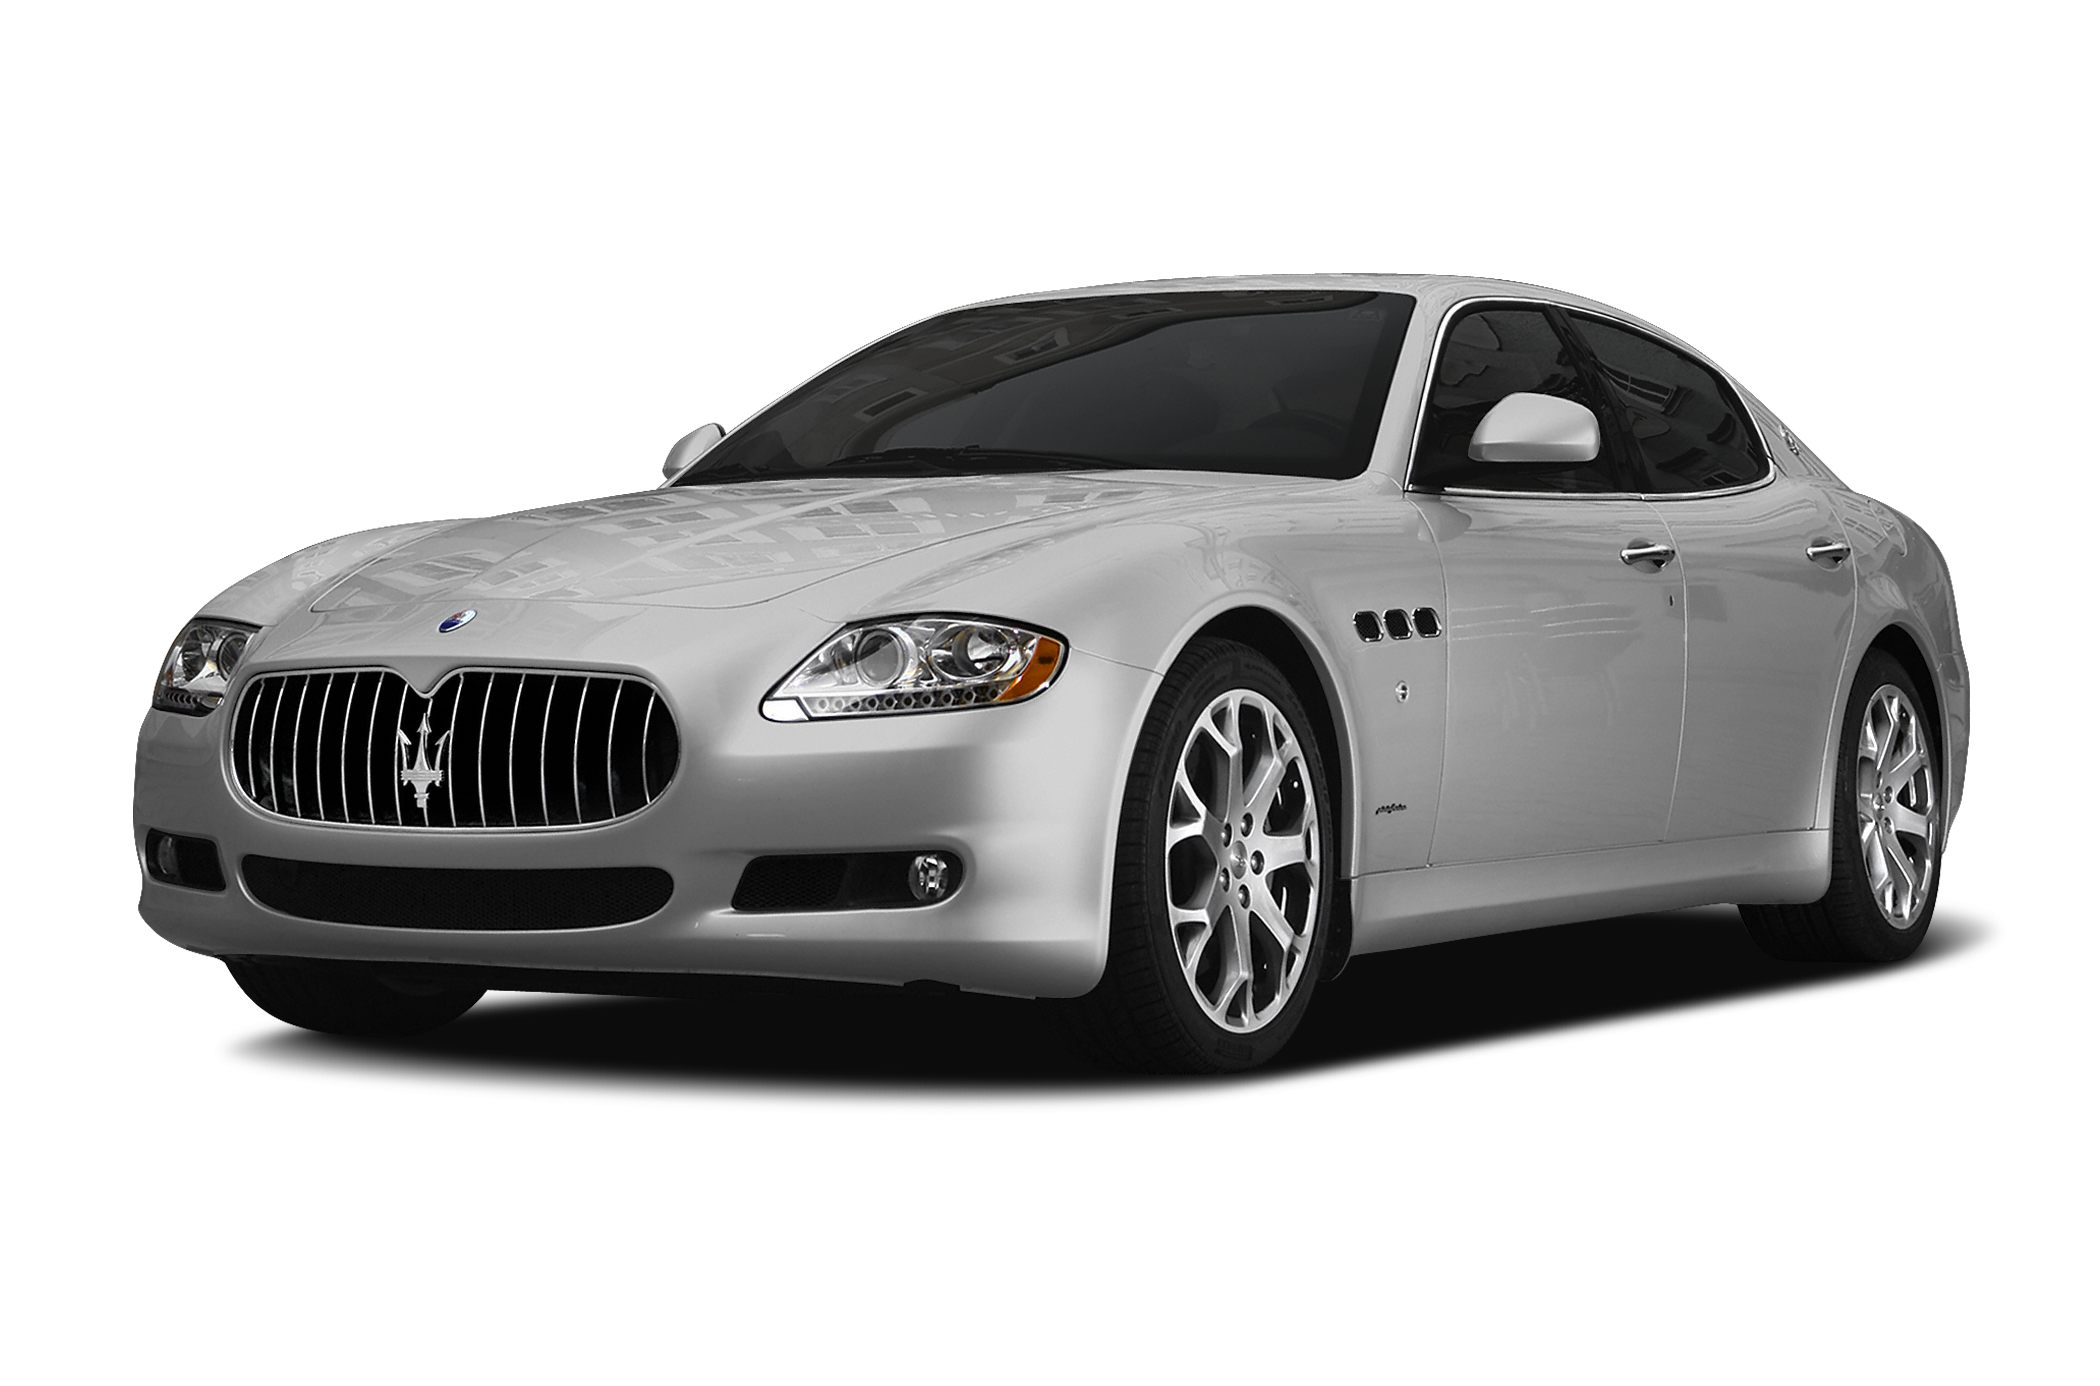 2009 Maserati Quattroporte